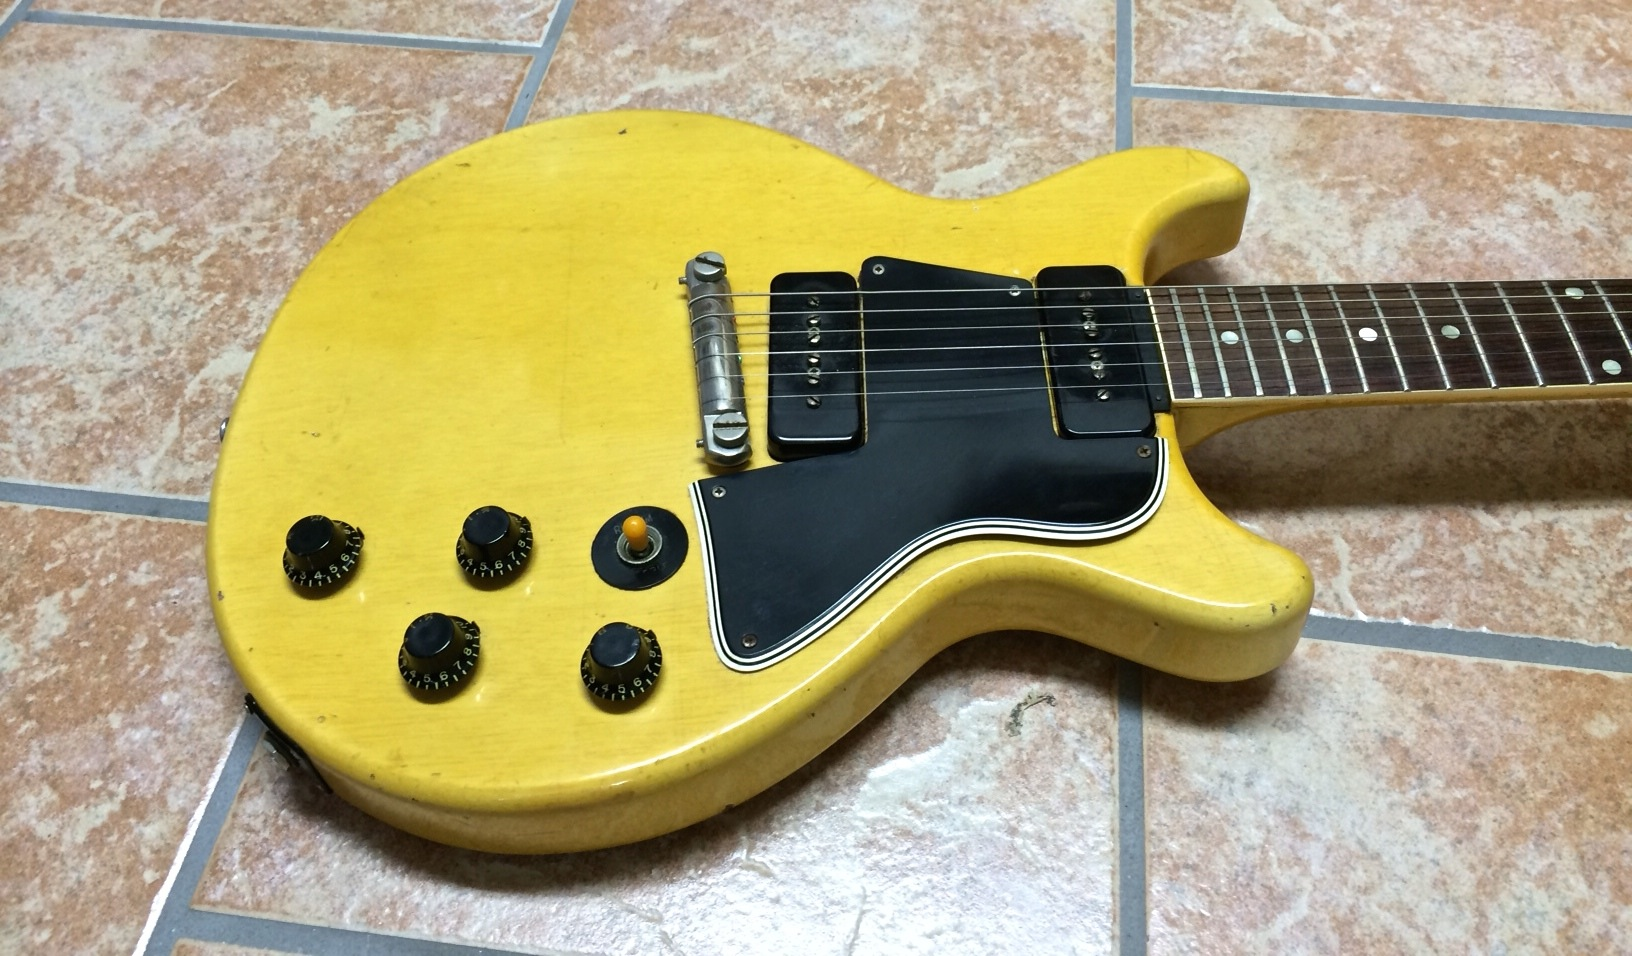 gibson les paul tv special 1959 tv yellow guitar for sale anders anderson guitars. Black Bedroom Furniture Sets. Home Design Ideas